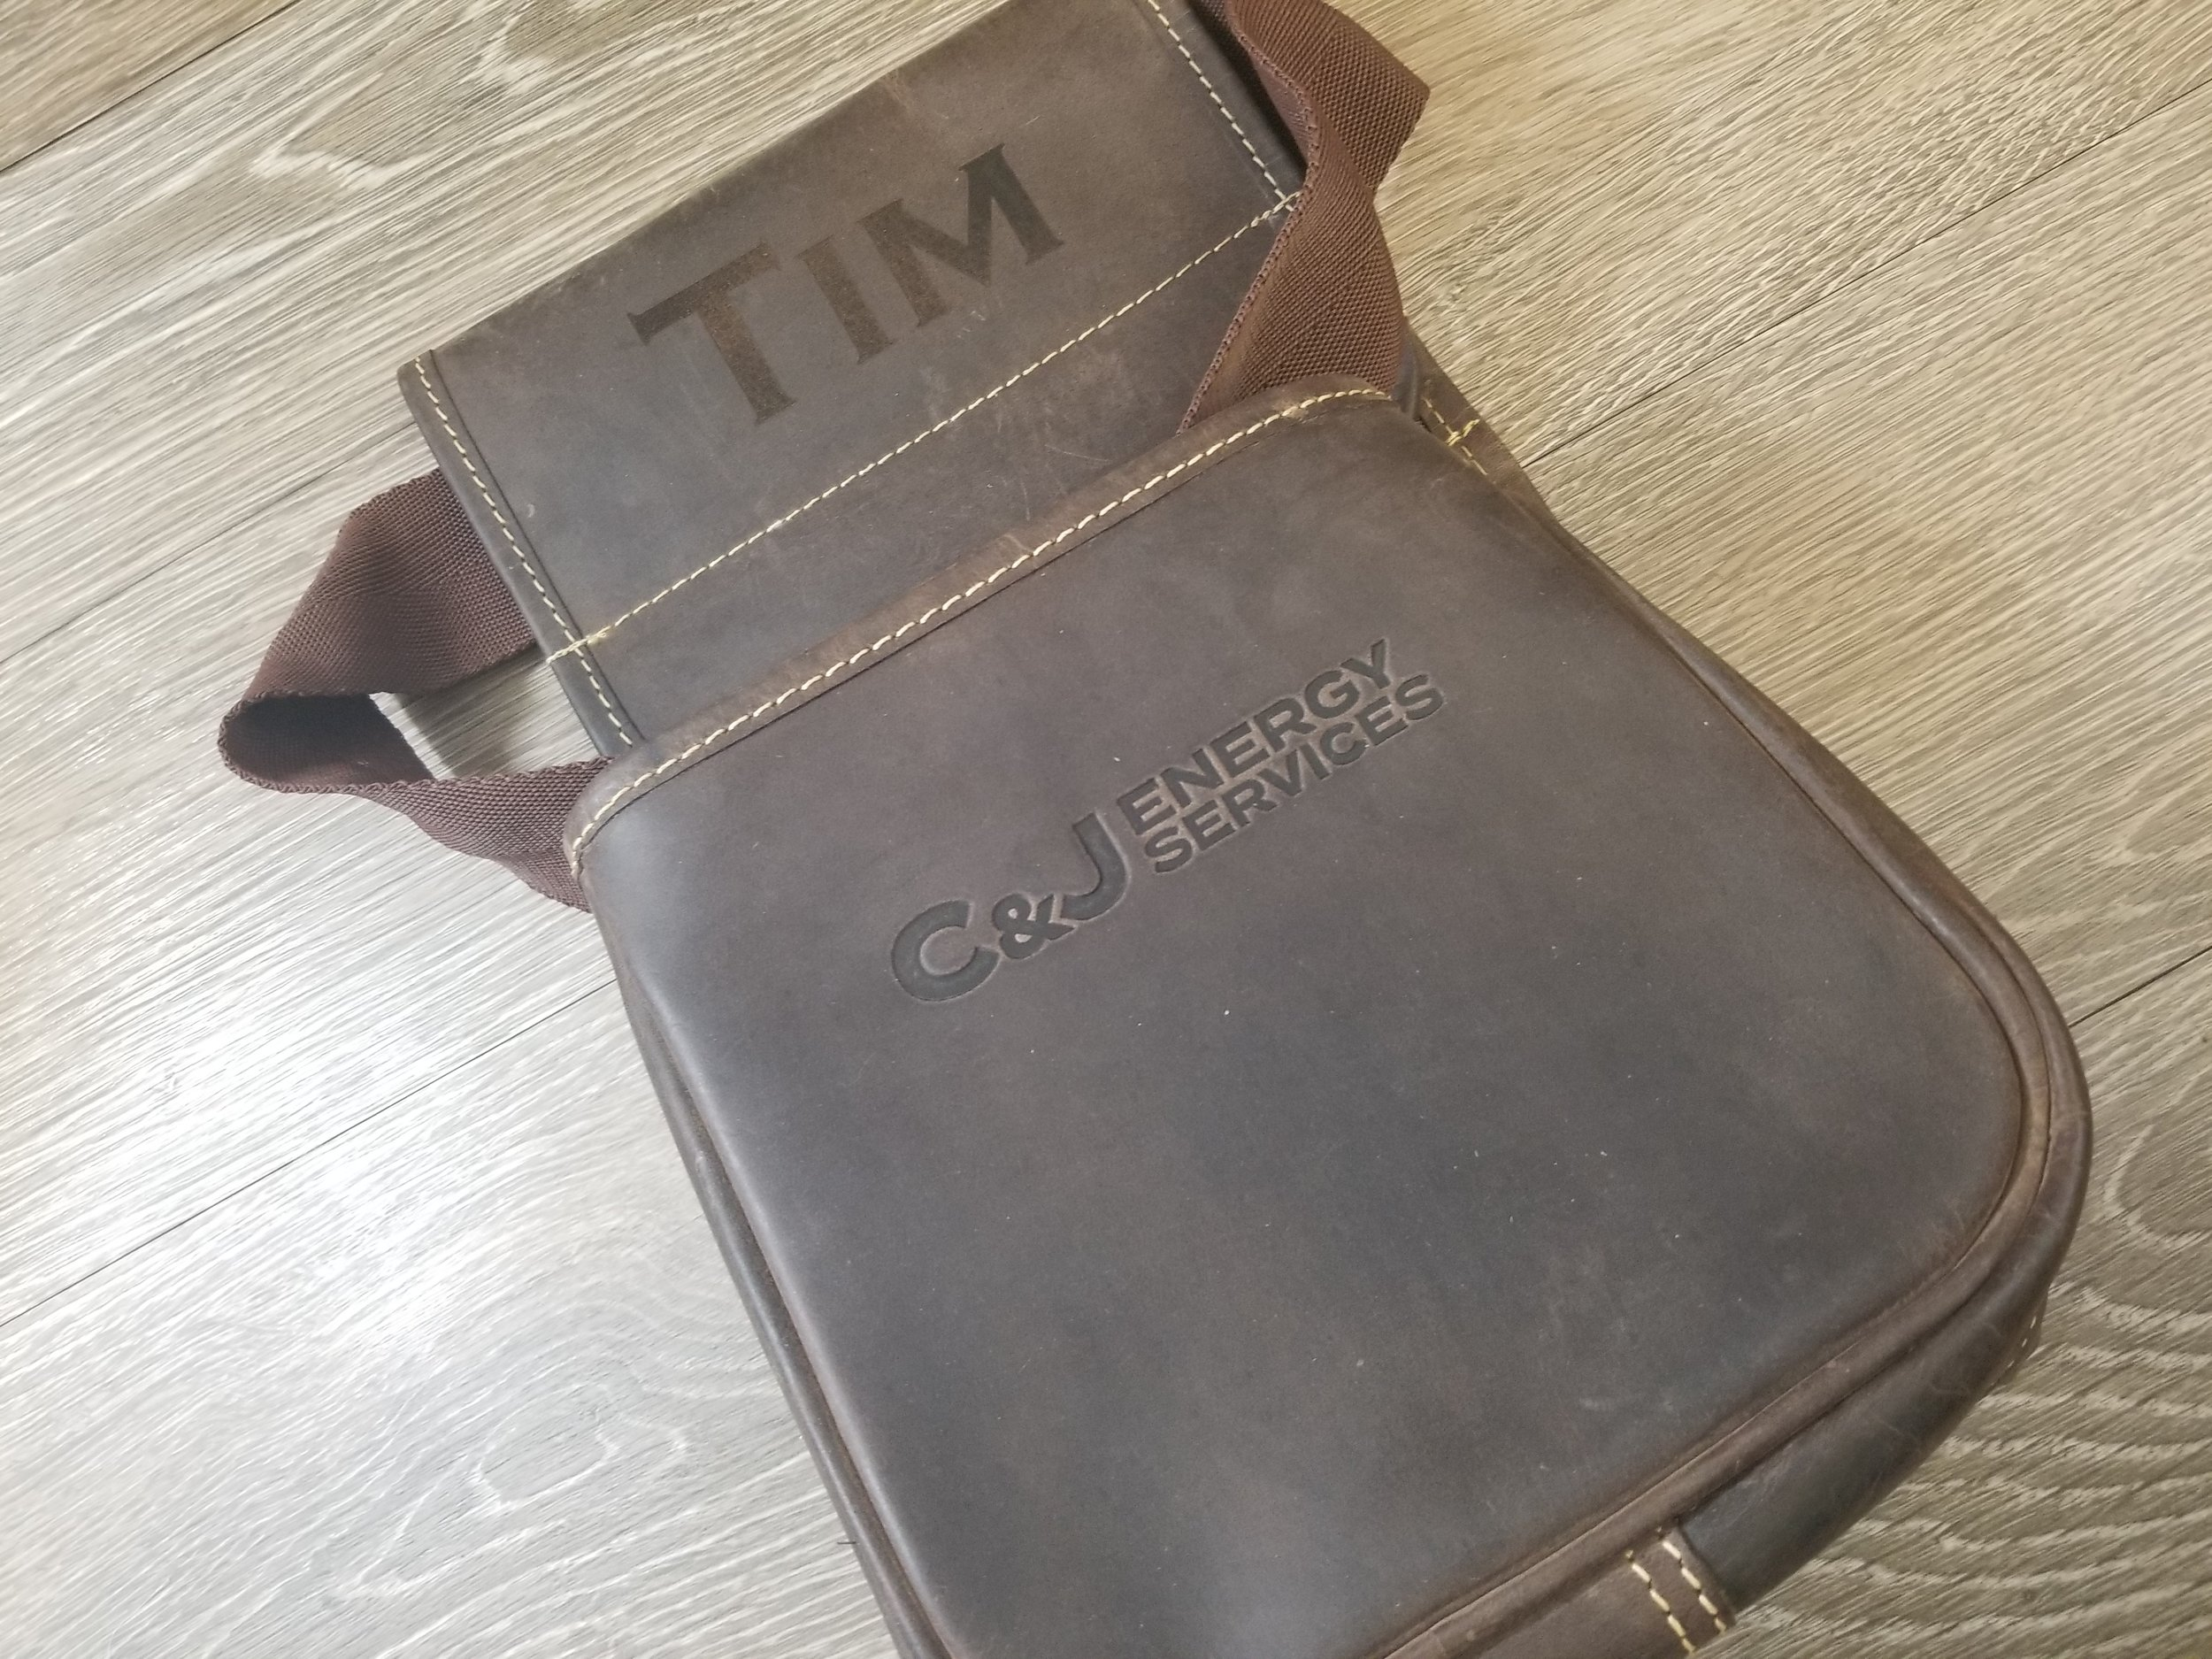 Custom Branded Leather Satchel - Branded Bags - Branded Marketing Giveaways - Branded Employee Appreciation Gifts - Corporate Identity Projects - Branding Projects from Engrave It Houston